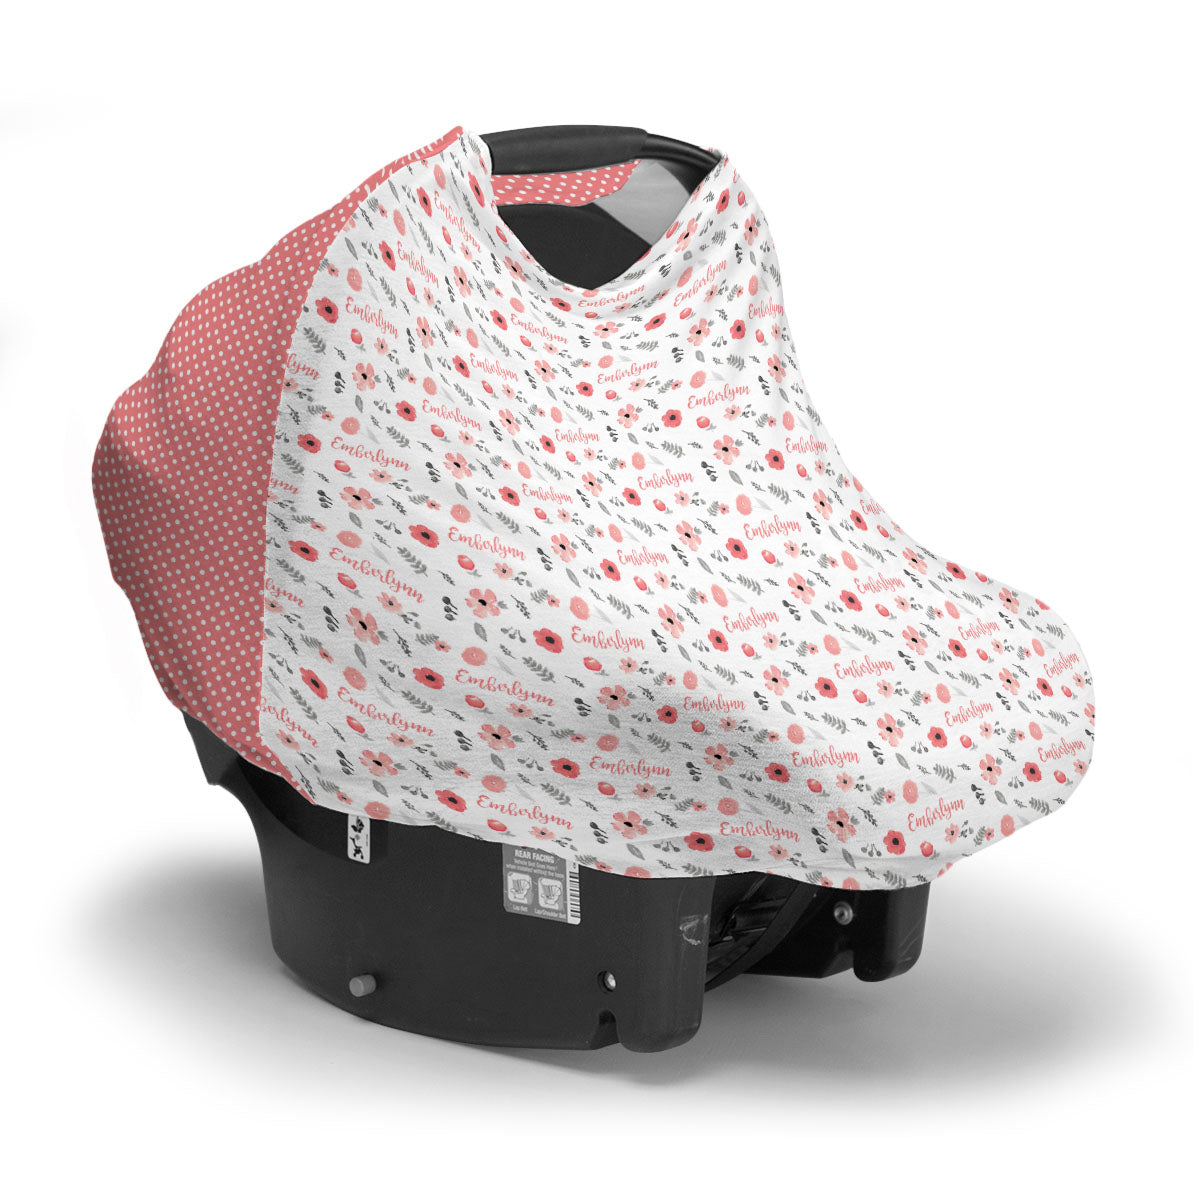 Emberlynn's Mountain Floral | Car Seat Cover (Multi-Use)